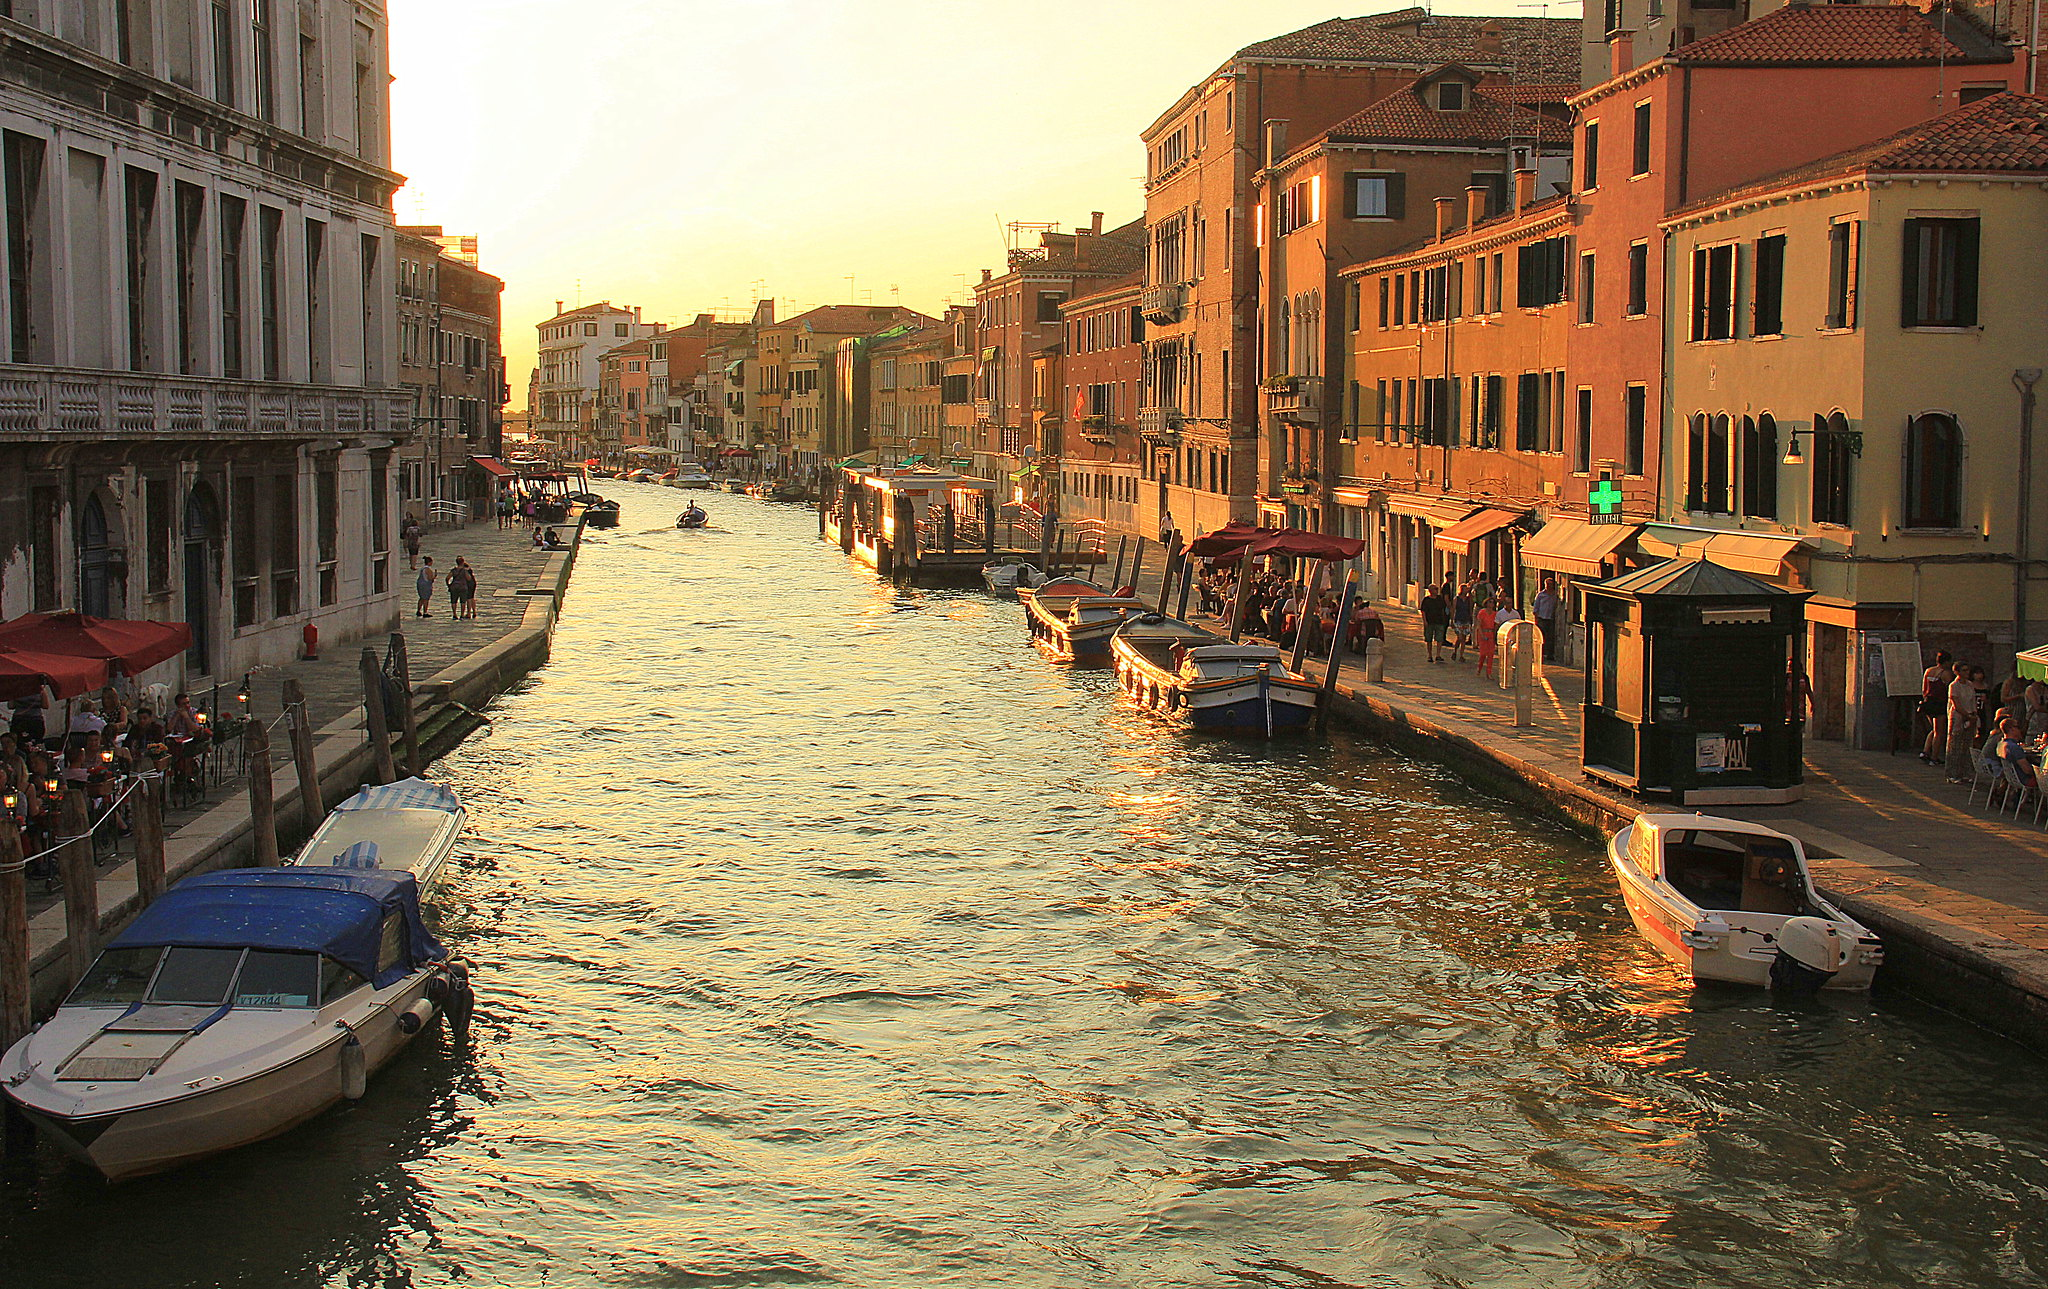 View of a canal during sunset in Venice